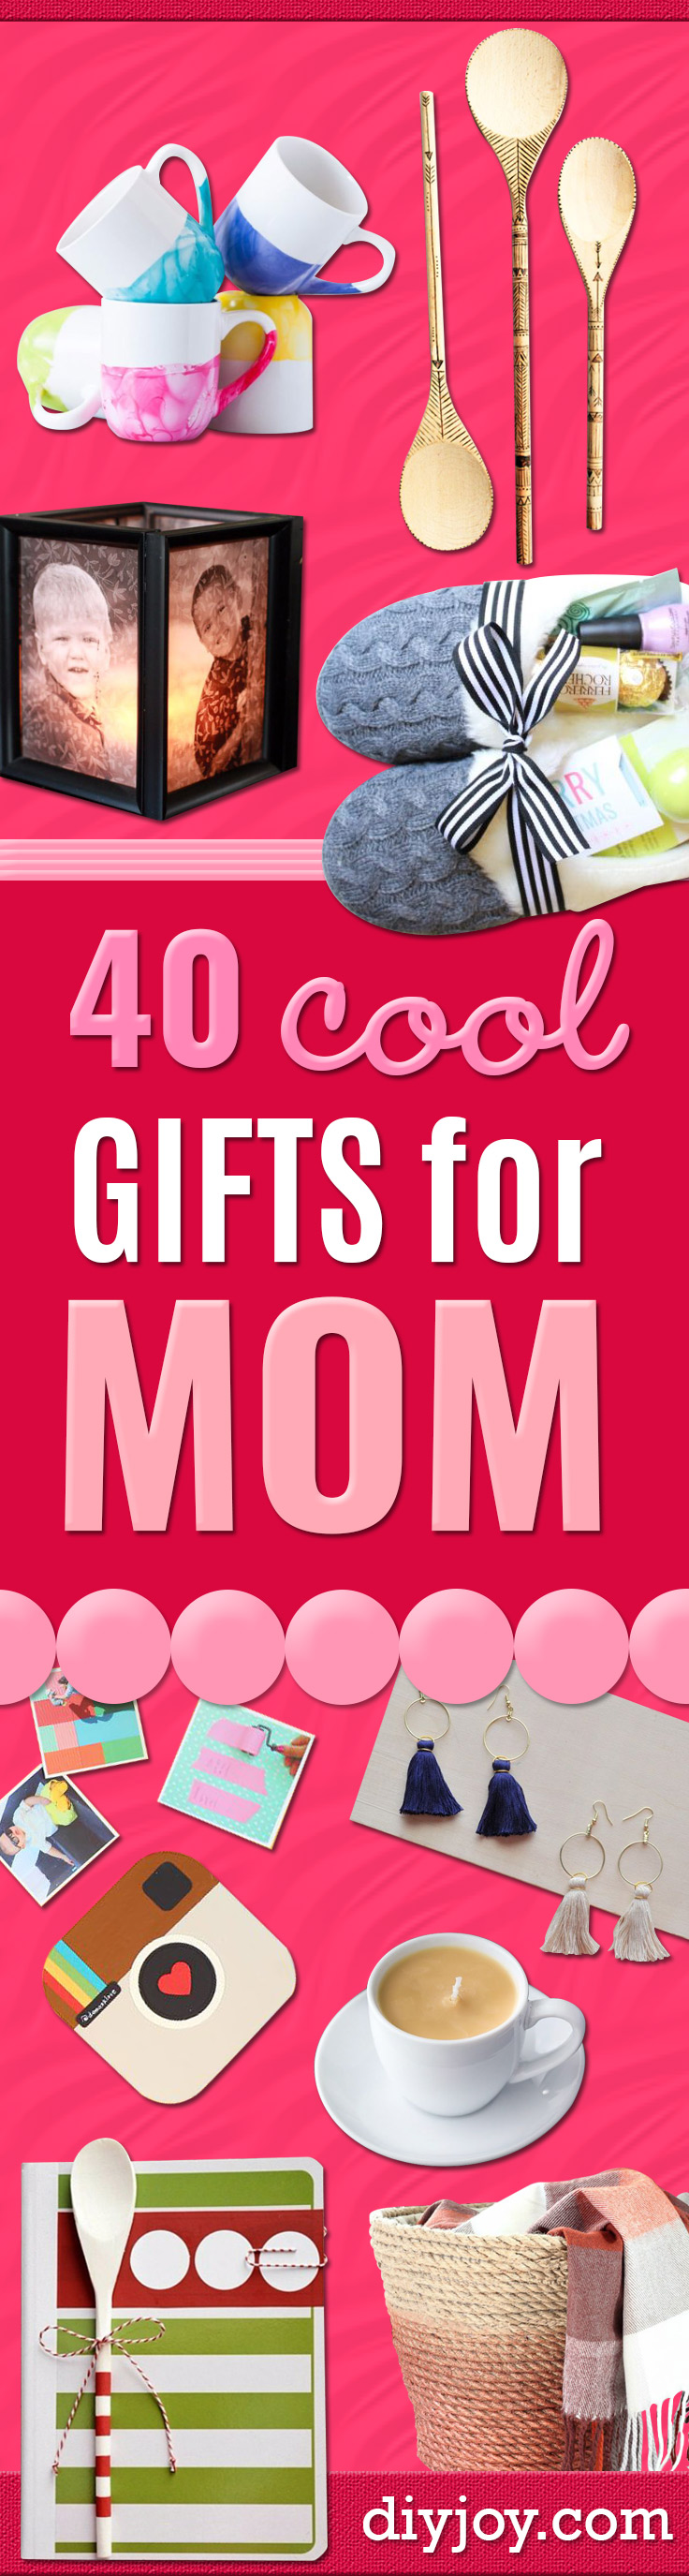 Cool Gifts to Make For Mom - DIY Gift Ideas and Christmas Presents for Your Mother, Mother-In-Law, Grandma, Stepmom - Creative , Holiday Crafts and Cheap DIY Gifts for The Holidays - Thoughtful Homemade Spa Day Gifts, Creative Wall Art, Special Ideas for Her - Easy Xmas Gifts to Make With Step by Step Tutorials and Instructions http://diyjoy.com/cheap-holiday-gift-ideas-to-make